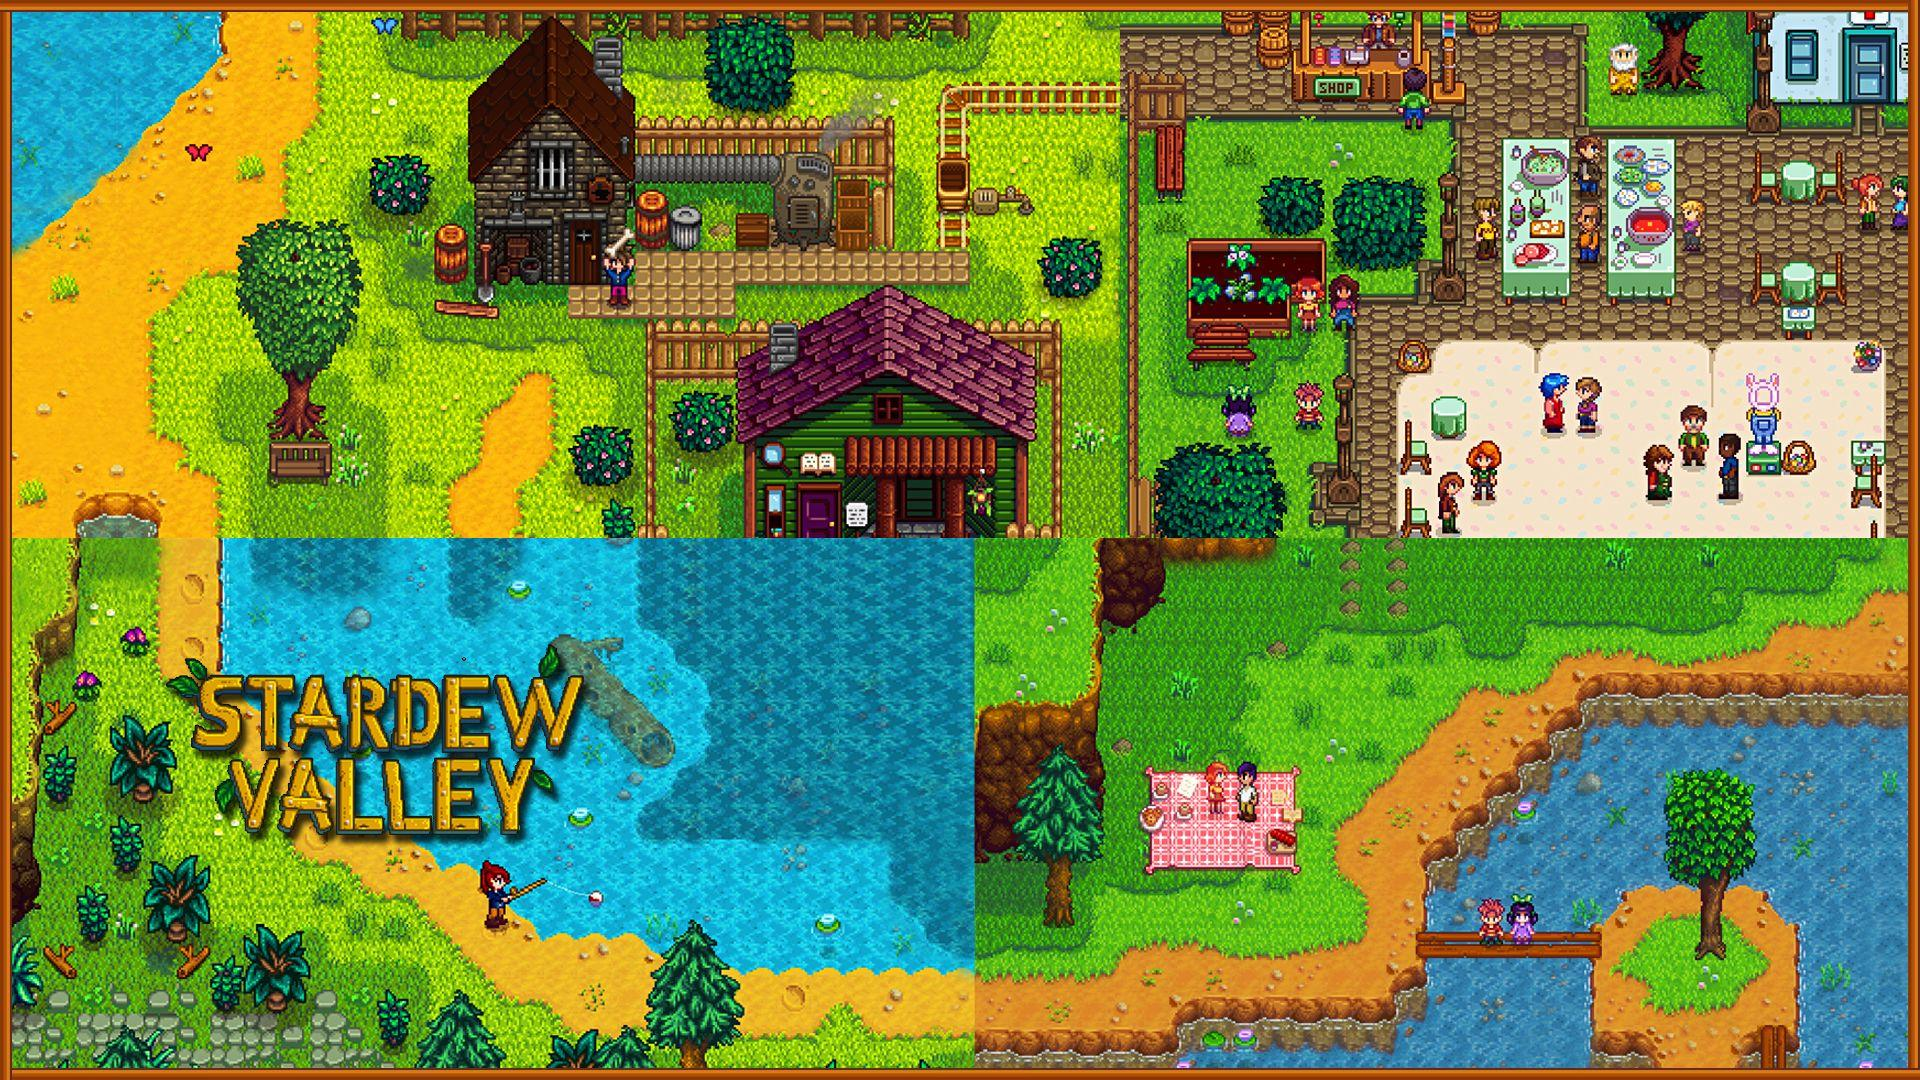 Stardew Valley Wallpapers - Wallpaper Cave